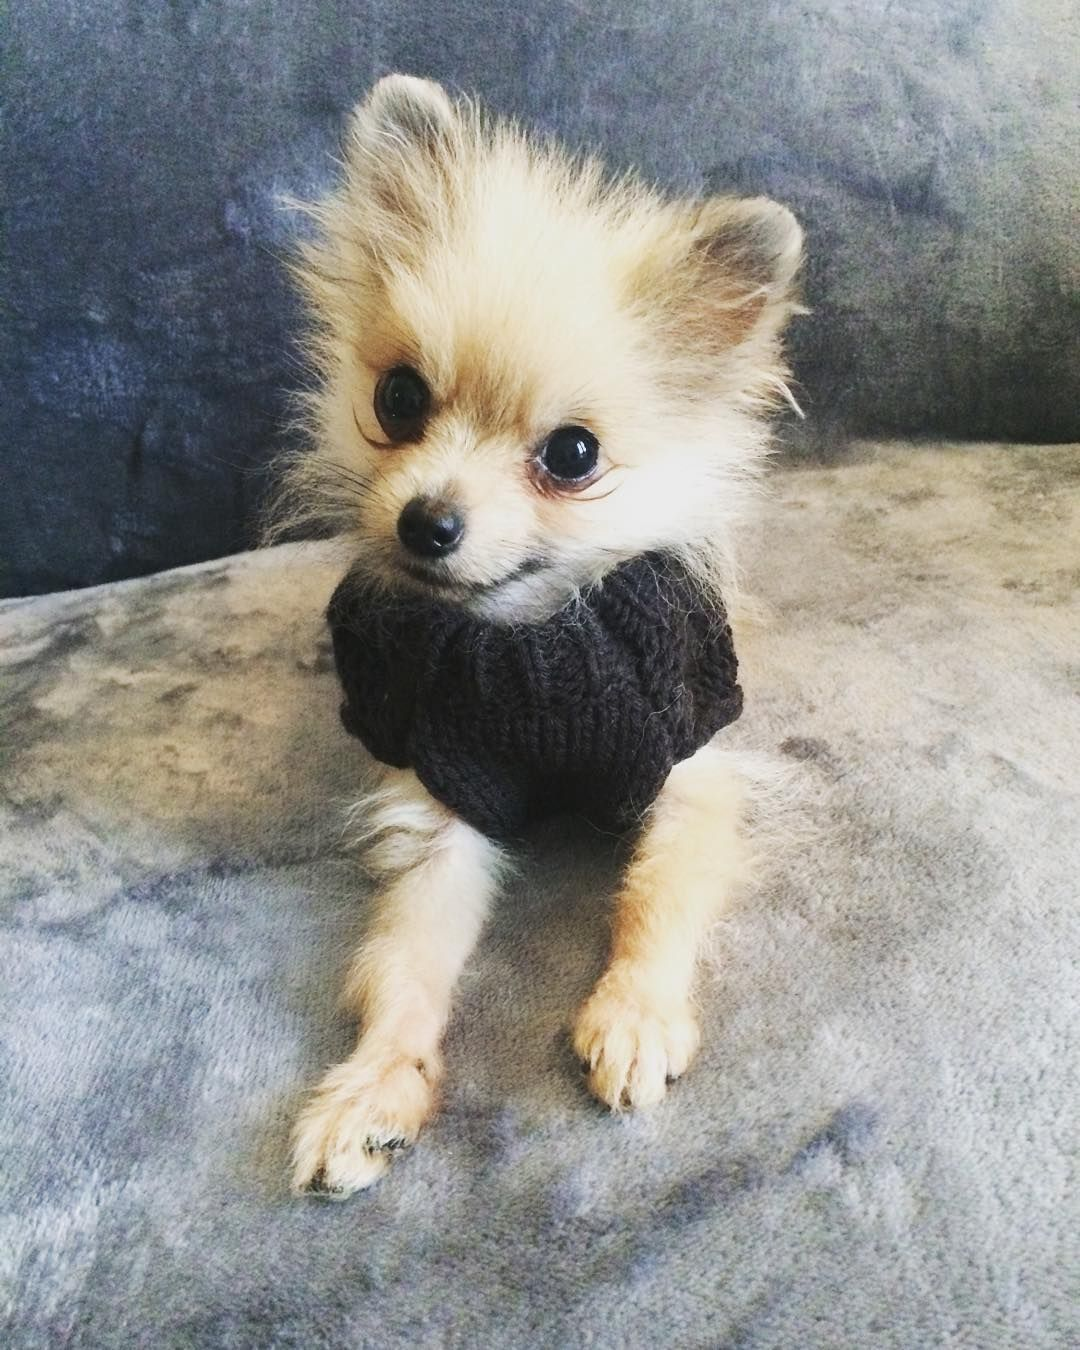 I just been to pets at home in my @sotnosdogwear jumper  they love me there. It's a bit chilly today  don't forget my special followers can get 10% off sotnos Dogwear if you use code 'THREELITTLEPOMS10'  I wonder if it will snow this Christmas  by threelittlepoms